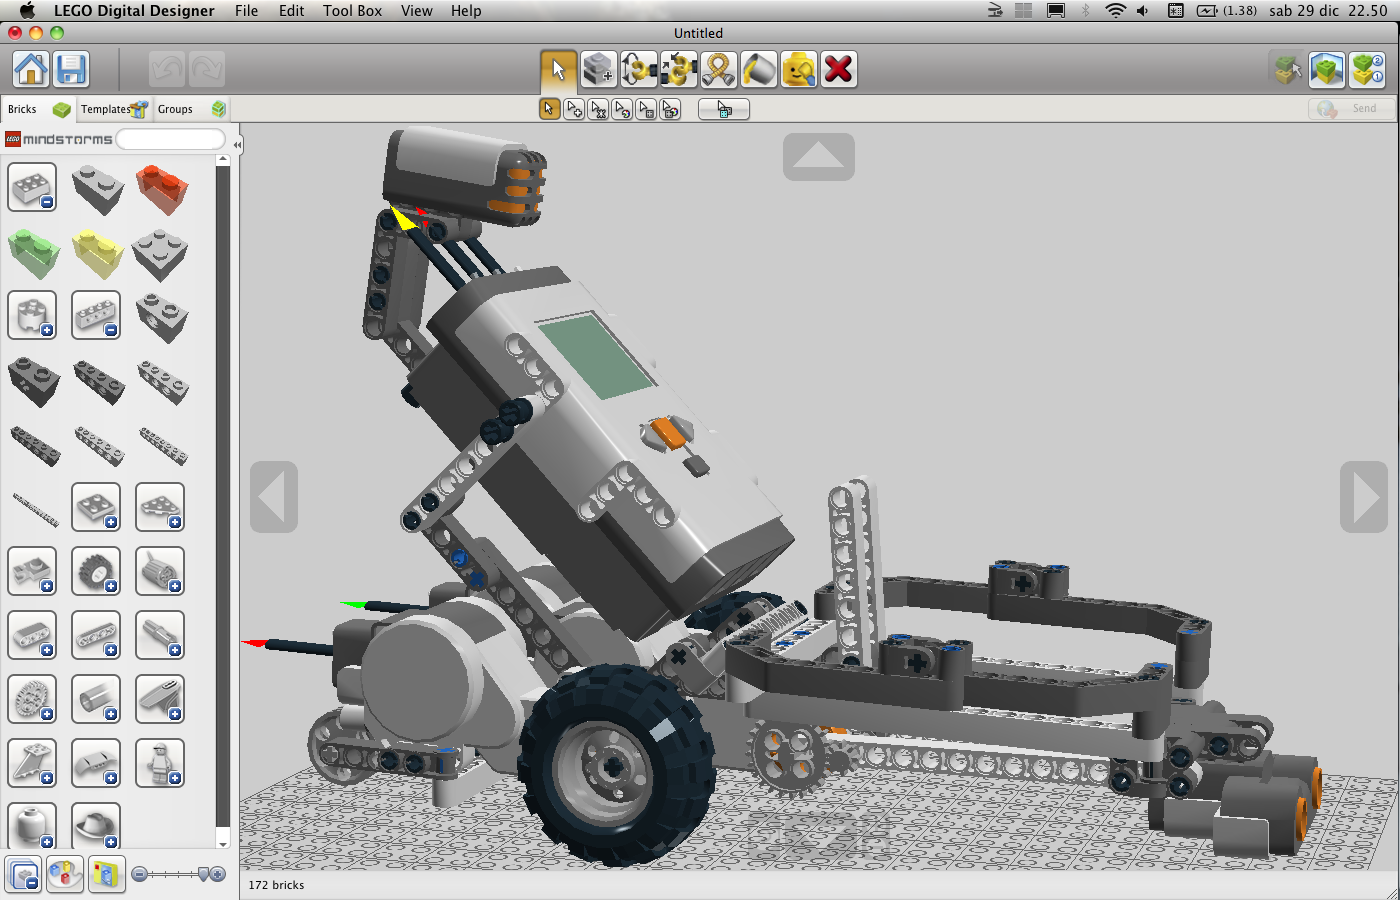 Buone feste con lego digital designer for Lego digital designer templates